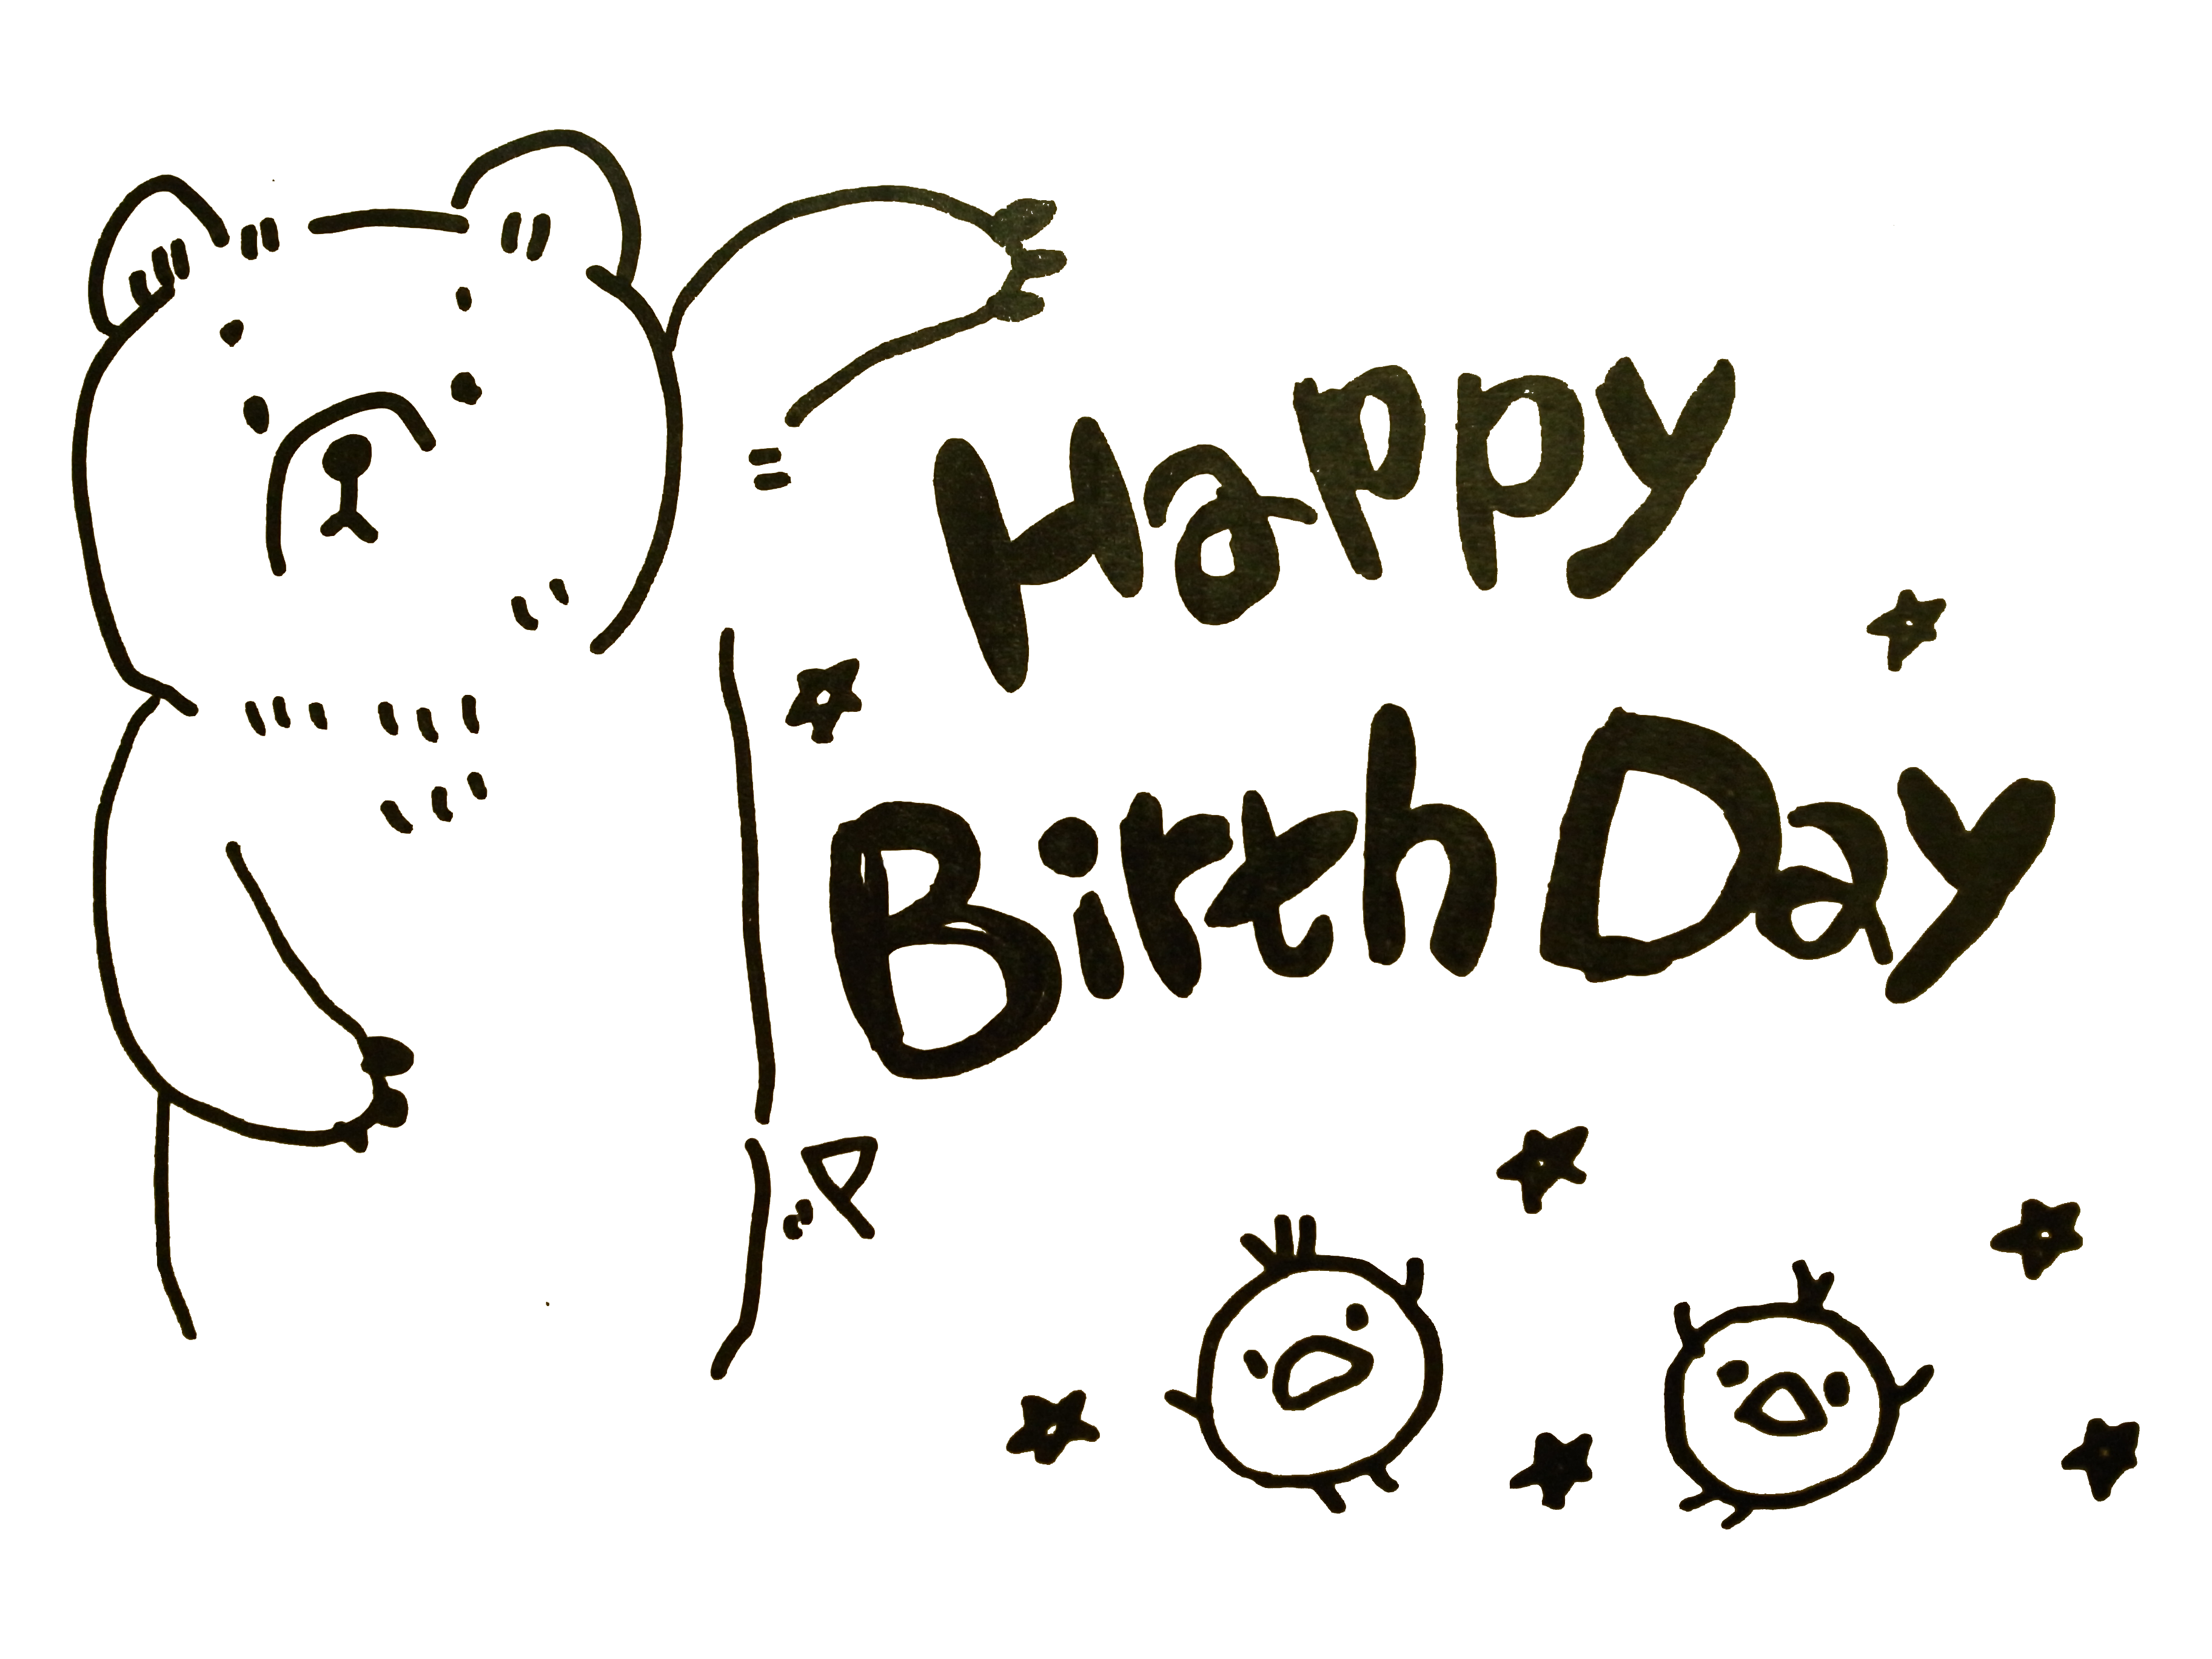 315744623847073970 as well Printable Circle Template also Snoopy Draw 2 594039106 also Clipart Apple 11 besides How To Draw Hello Neighbour. on happy birthday vids